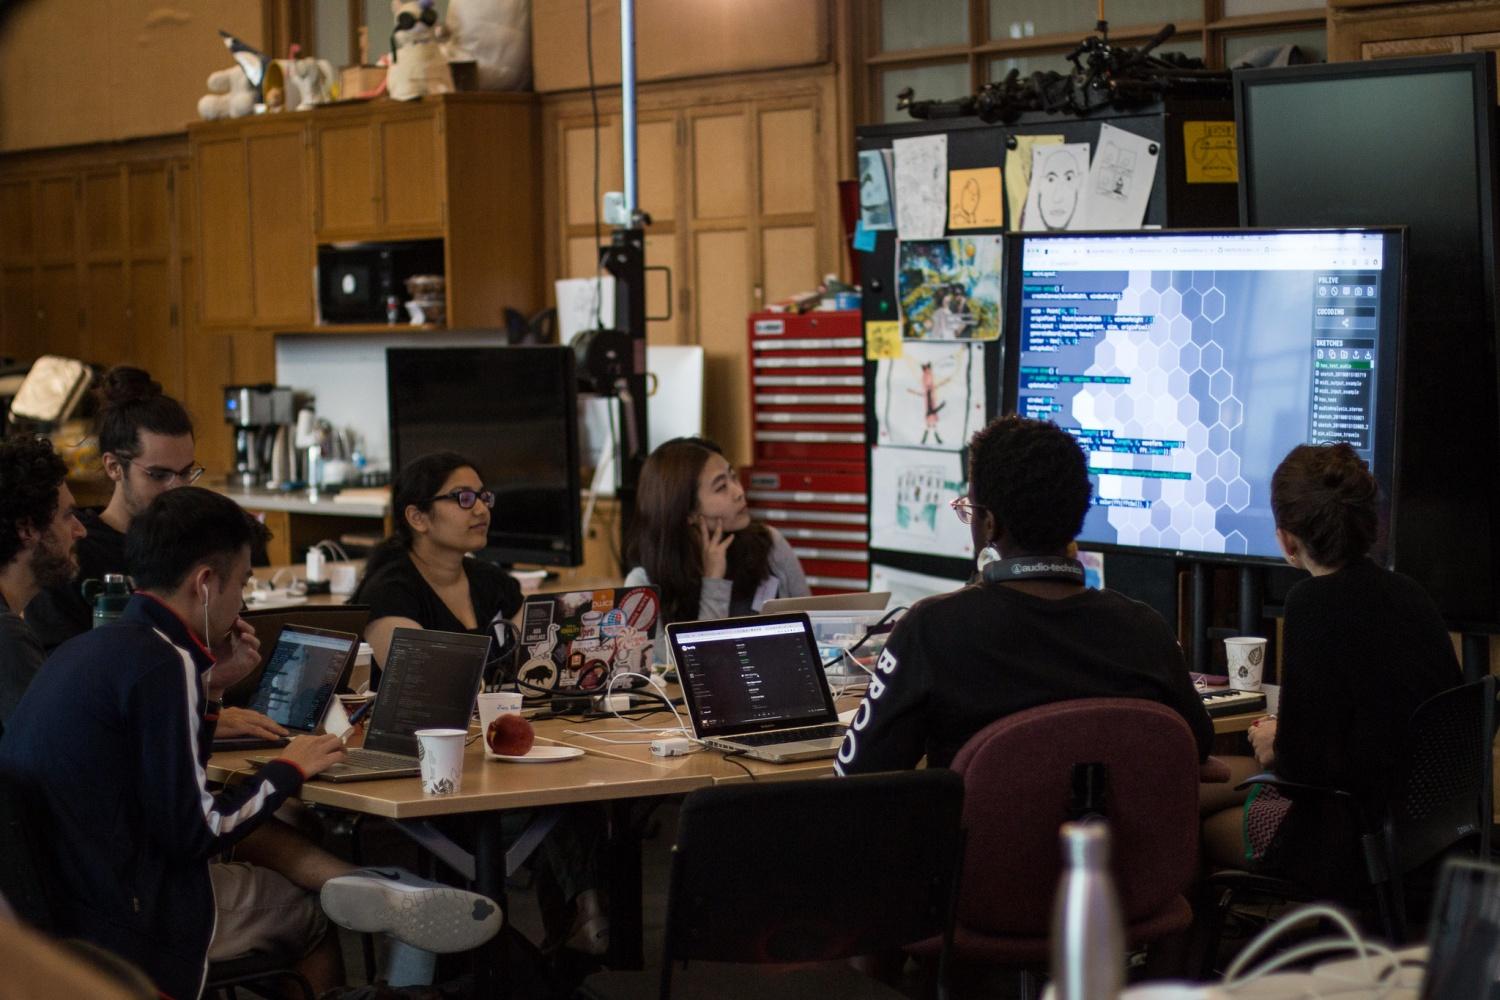 Participants sit around a table with their laptops and observe code on a screen